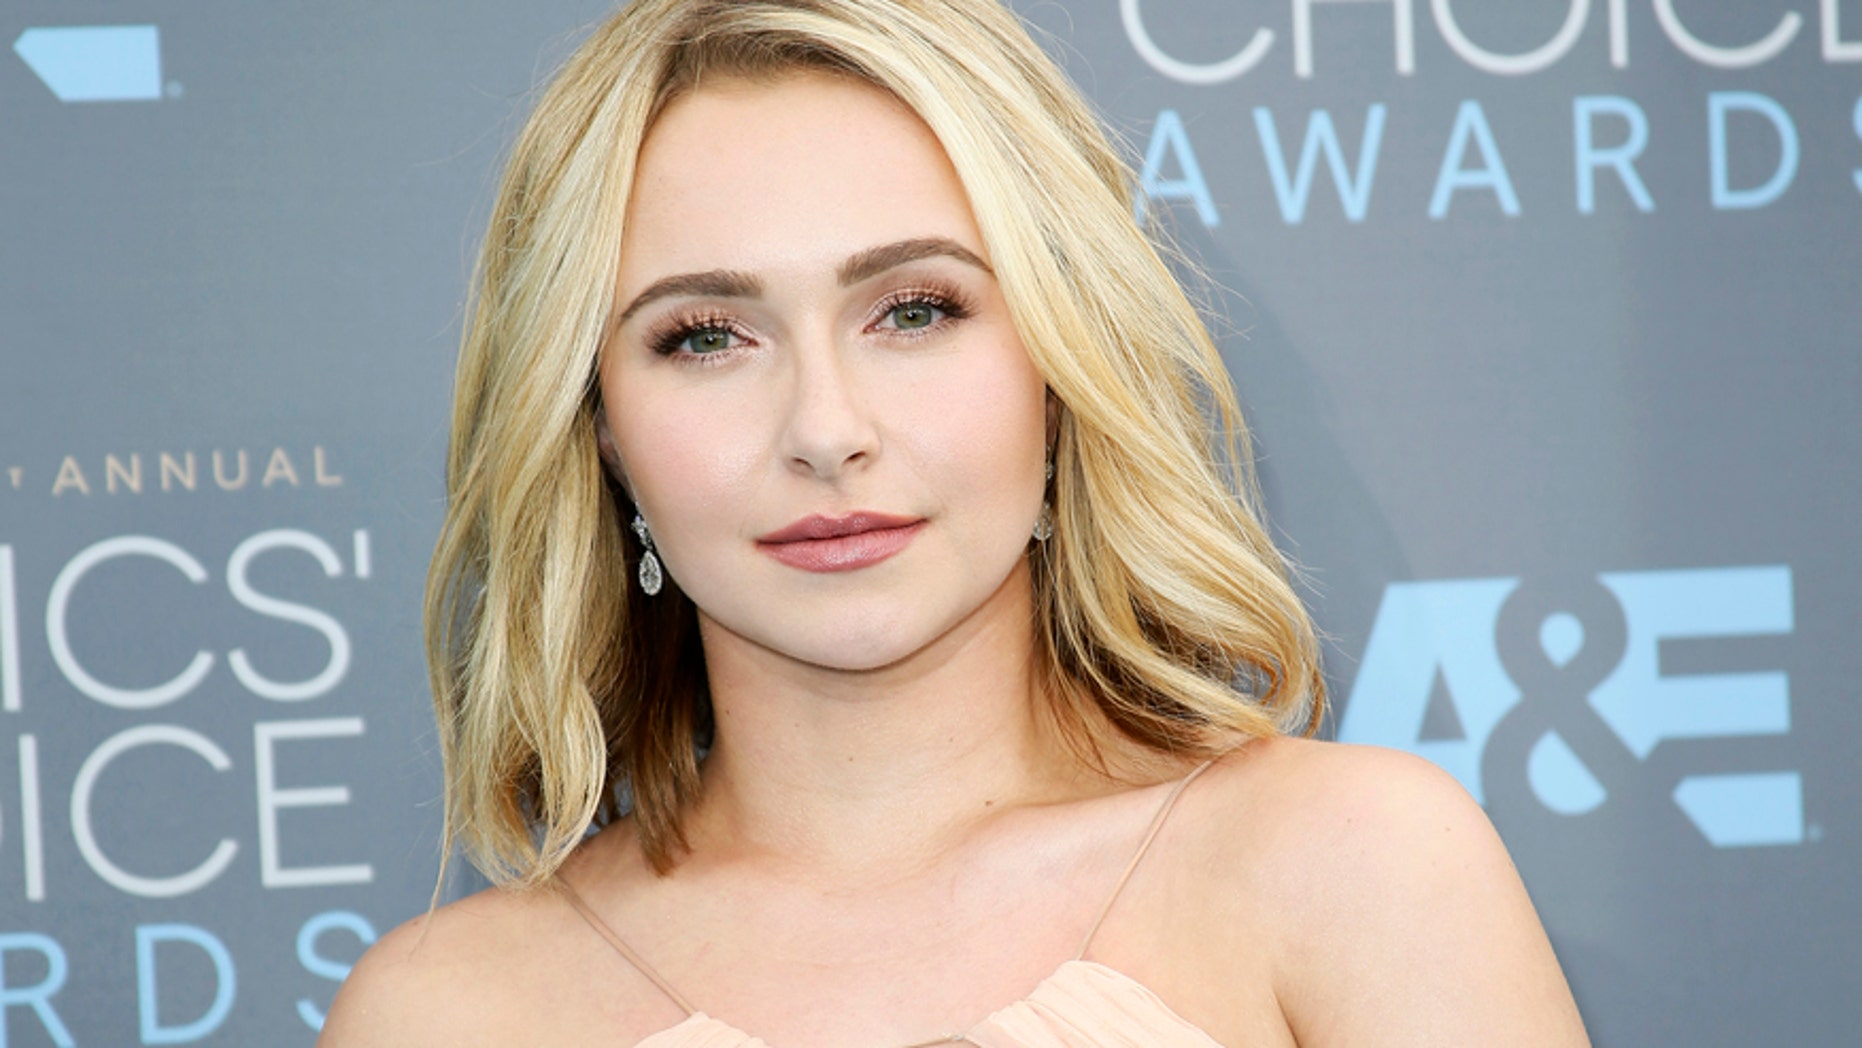 """Hayden Panettiere is the latest to celebrity to share their thoughts on the chemical chemtrails conspiracy theory. Those who believe in chemtrails think that the white residue left behind by airplanes are chemicals ordered by the government for undisclosed reasons. She <a href=""""https://twitter.com/haydenpanettier/status/843208753084317696"""" target=""""_blank"""">tweeted</a>, """"What the heck r they spraying over us?! It's been happening for years but only this extreme for the past few months."""""""